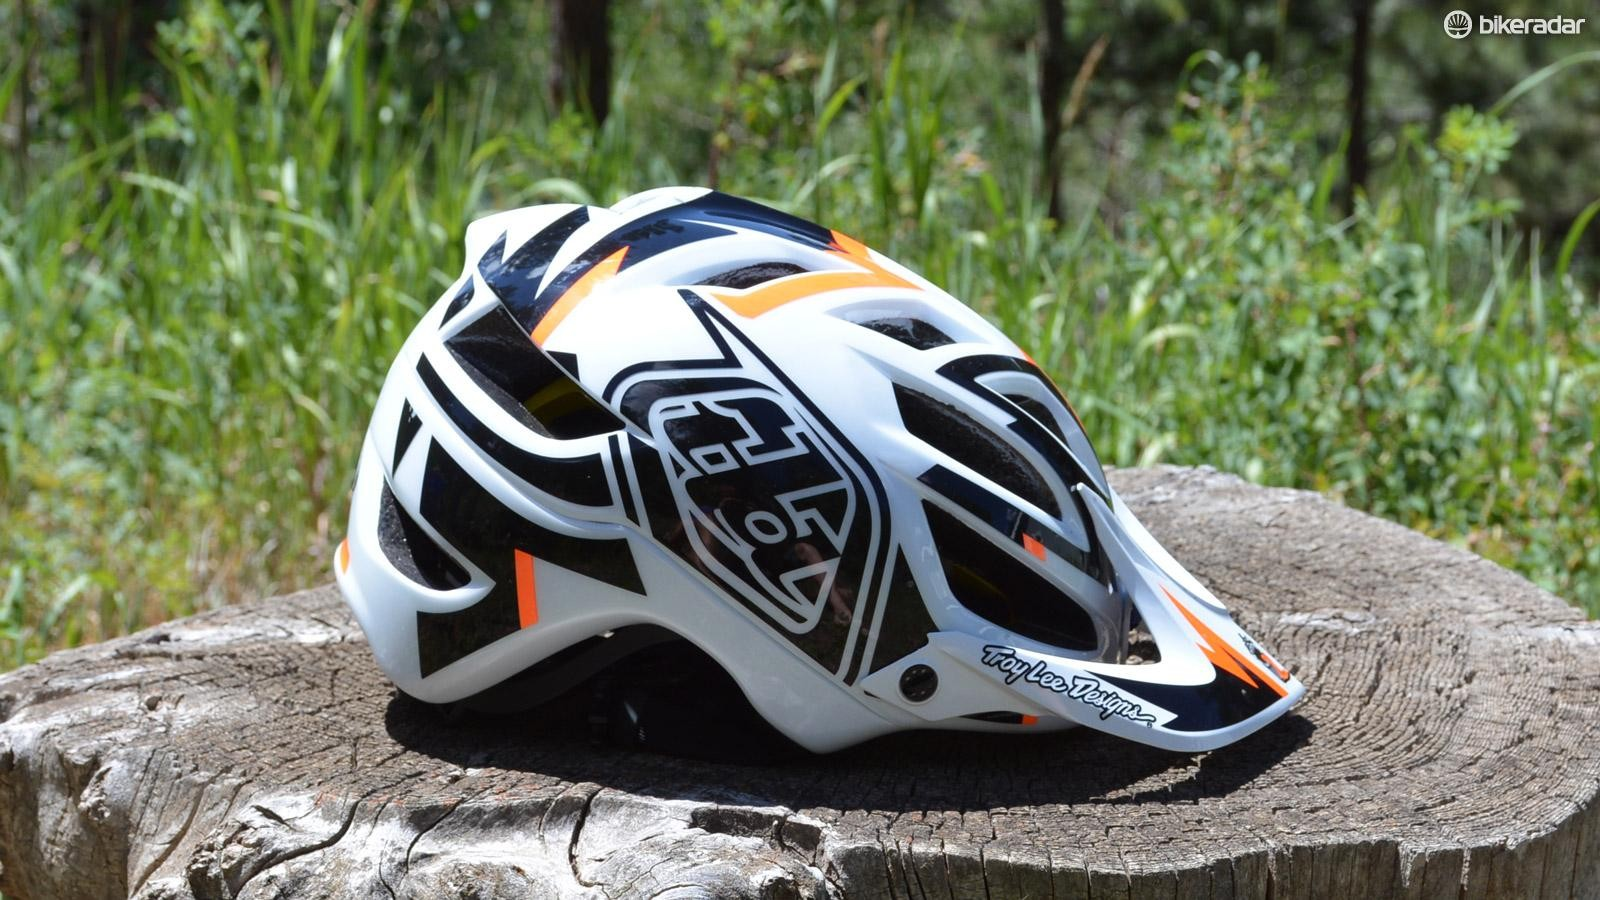 Troy Lee Designs A1 MIPS Vertigo helmet is loaded with the ubiquitous TLD style